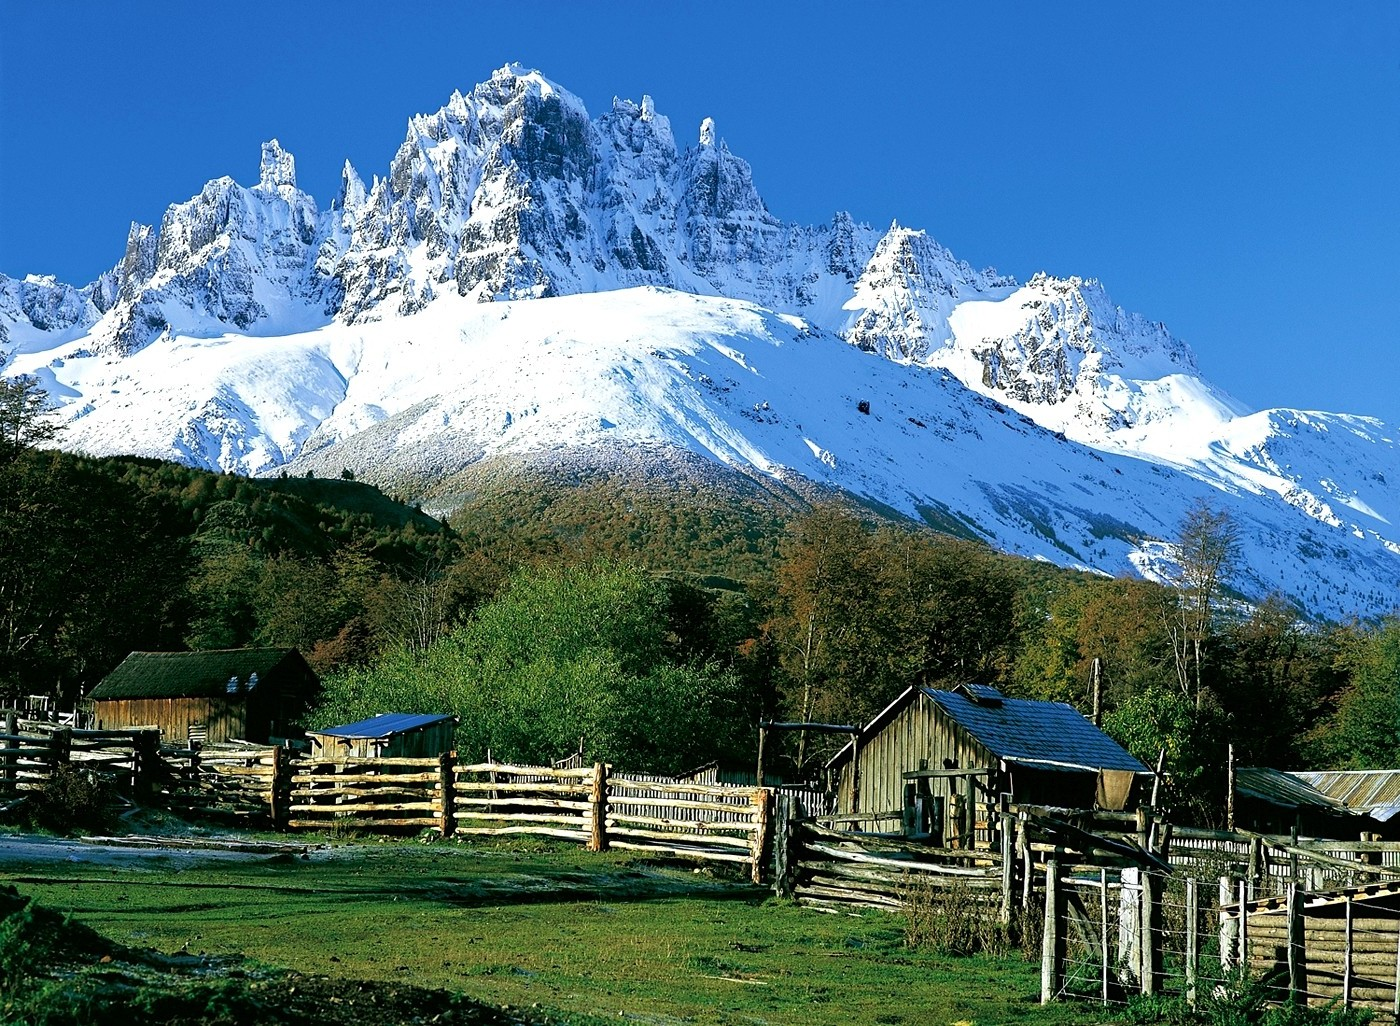 Cars The Movie Wallpapers Free Fence Mountain Trees Grass Snowy Peak Chile